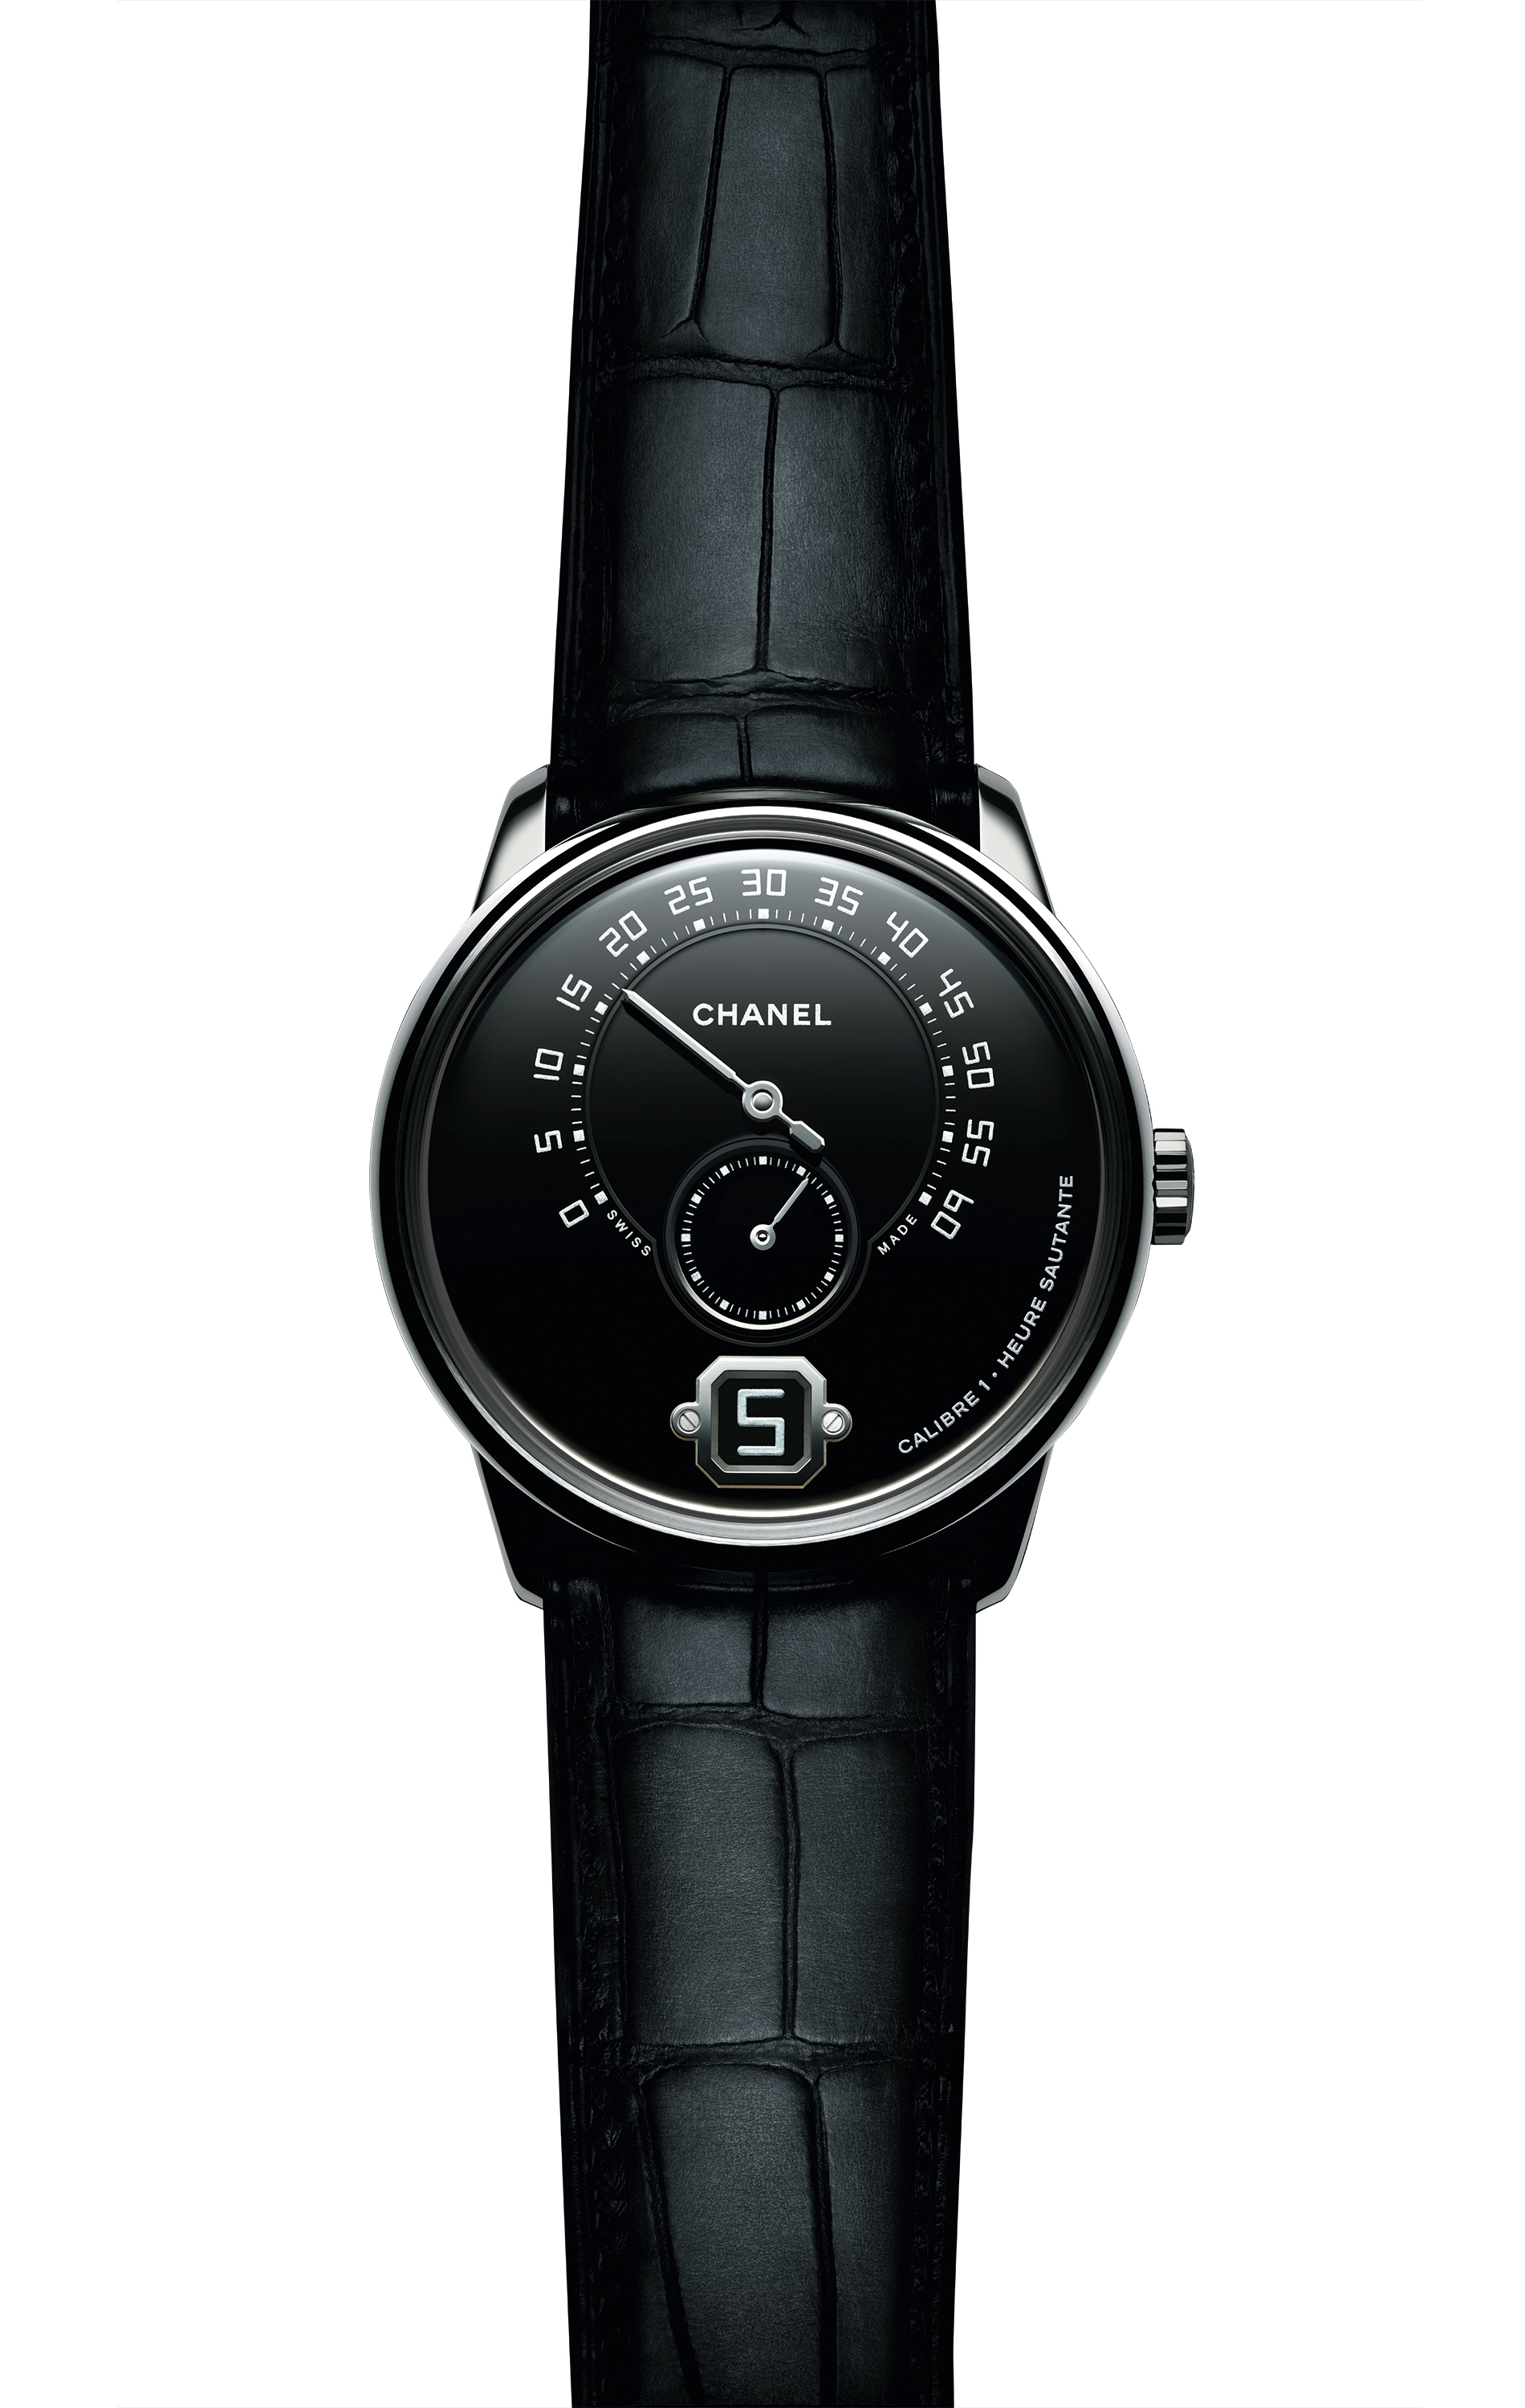 Montre Monsieur, CHANEL.